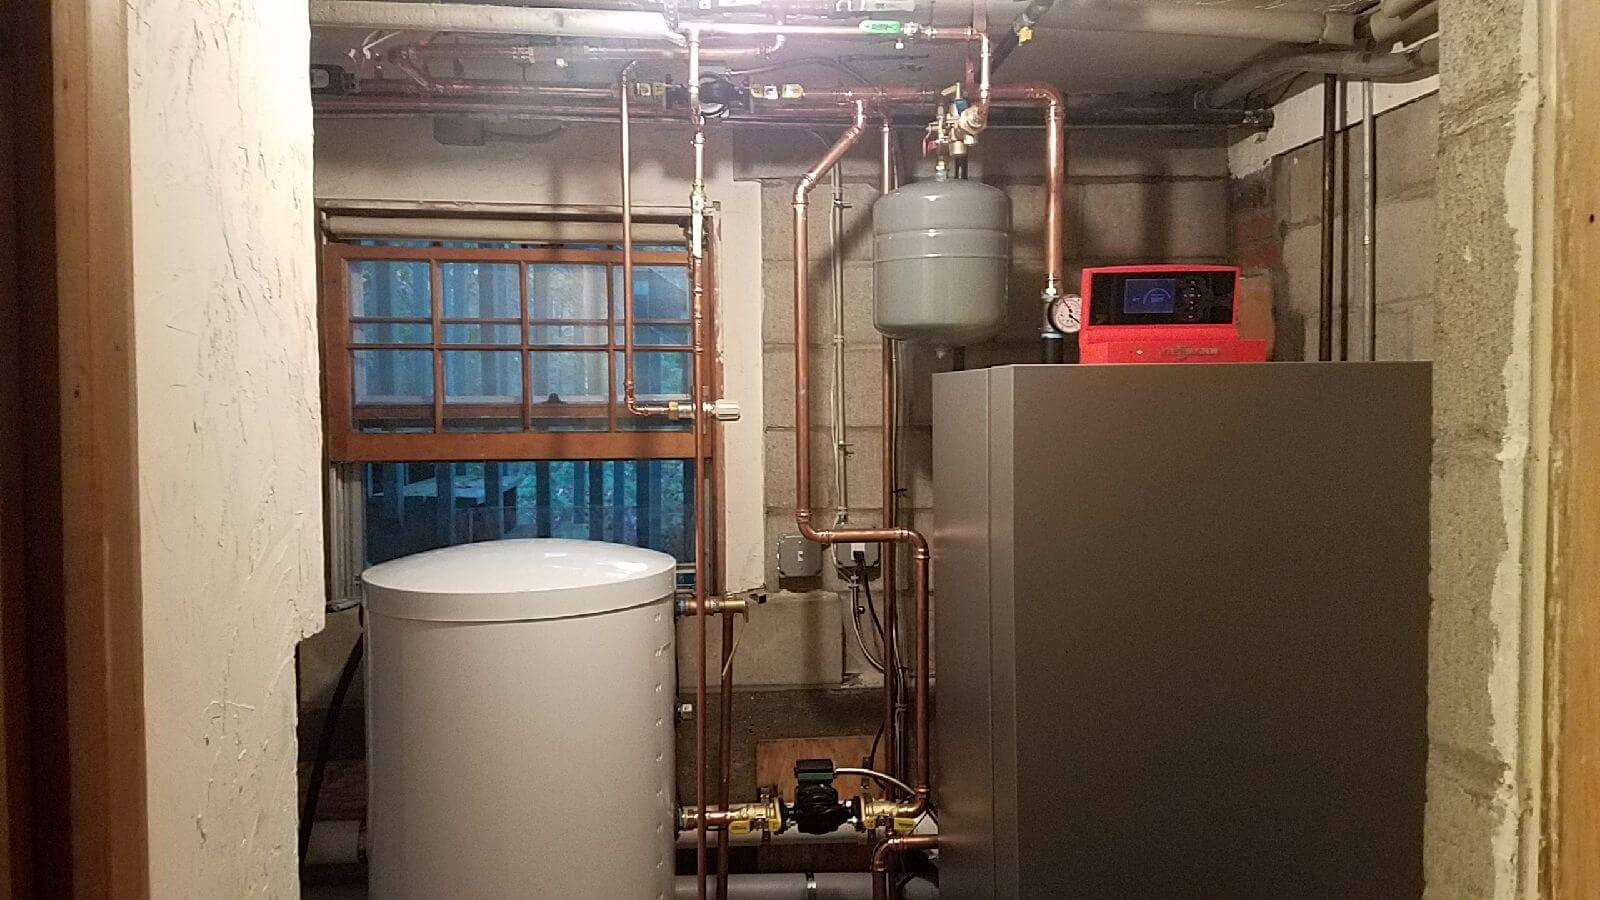 The Importance in Upgrading Your Water Heater-Palm Beach Water Heater Installers-We do Water Heater Installation and Repair, Natural Gas Water Heaters, 24/7 Emergency Water Heater Service and Maintenance, Hybrid Water Heaters, Water Heater Expansion Tank, Commercial Water Heater Services, Tankless Water Heaters Installations, and more